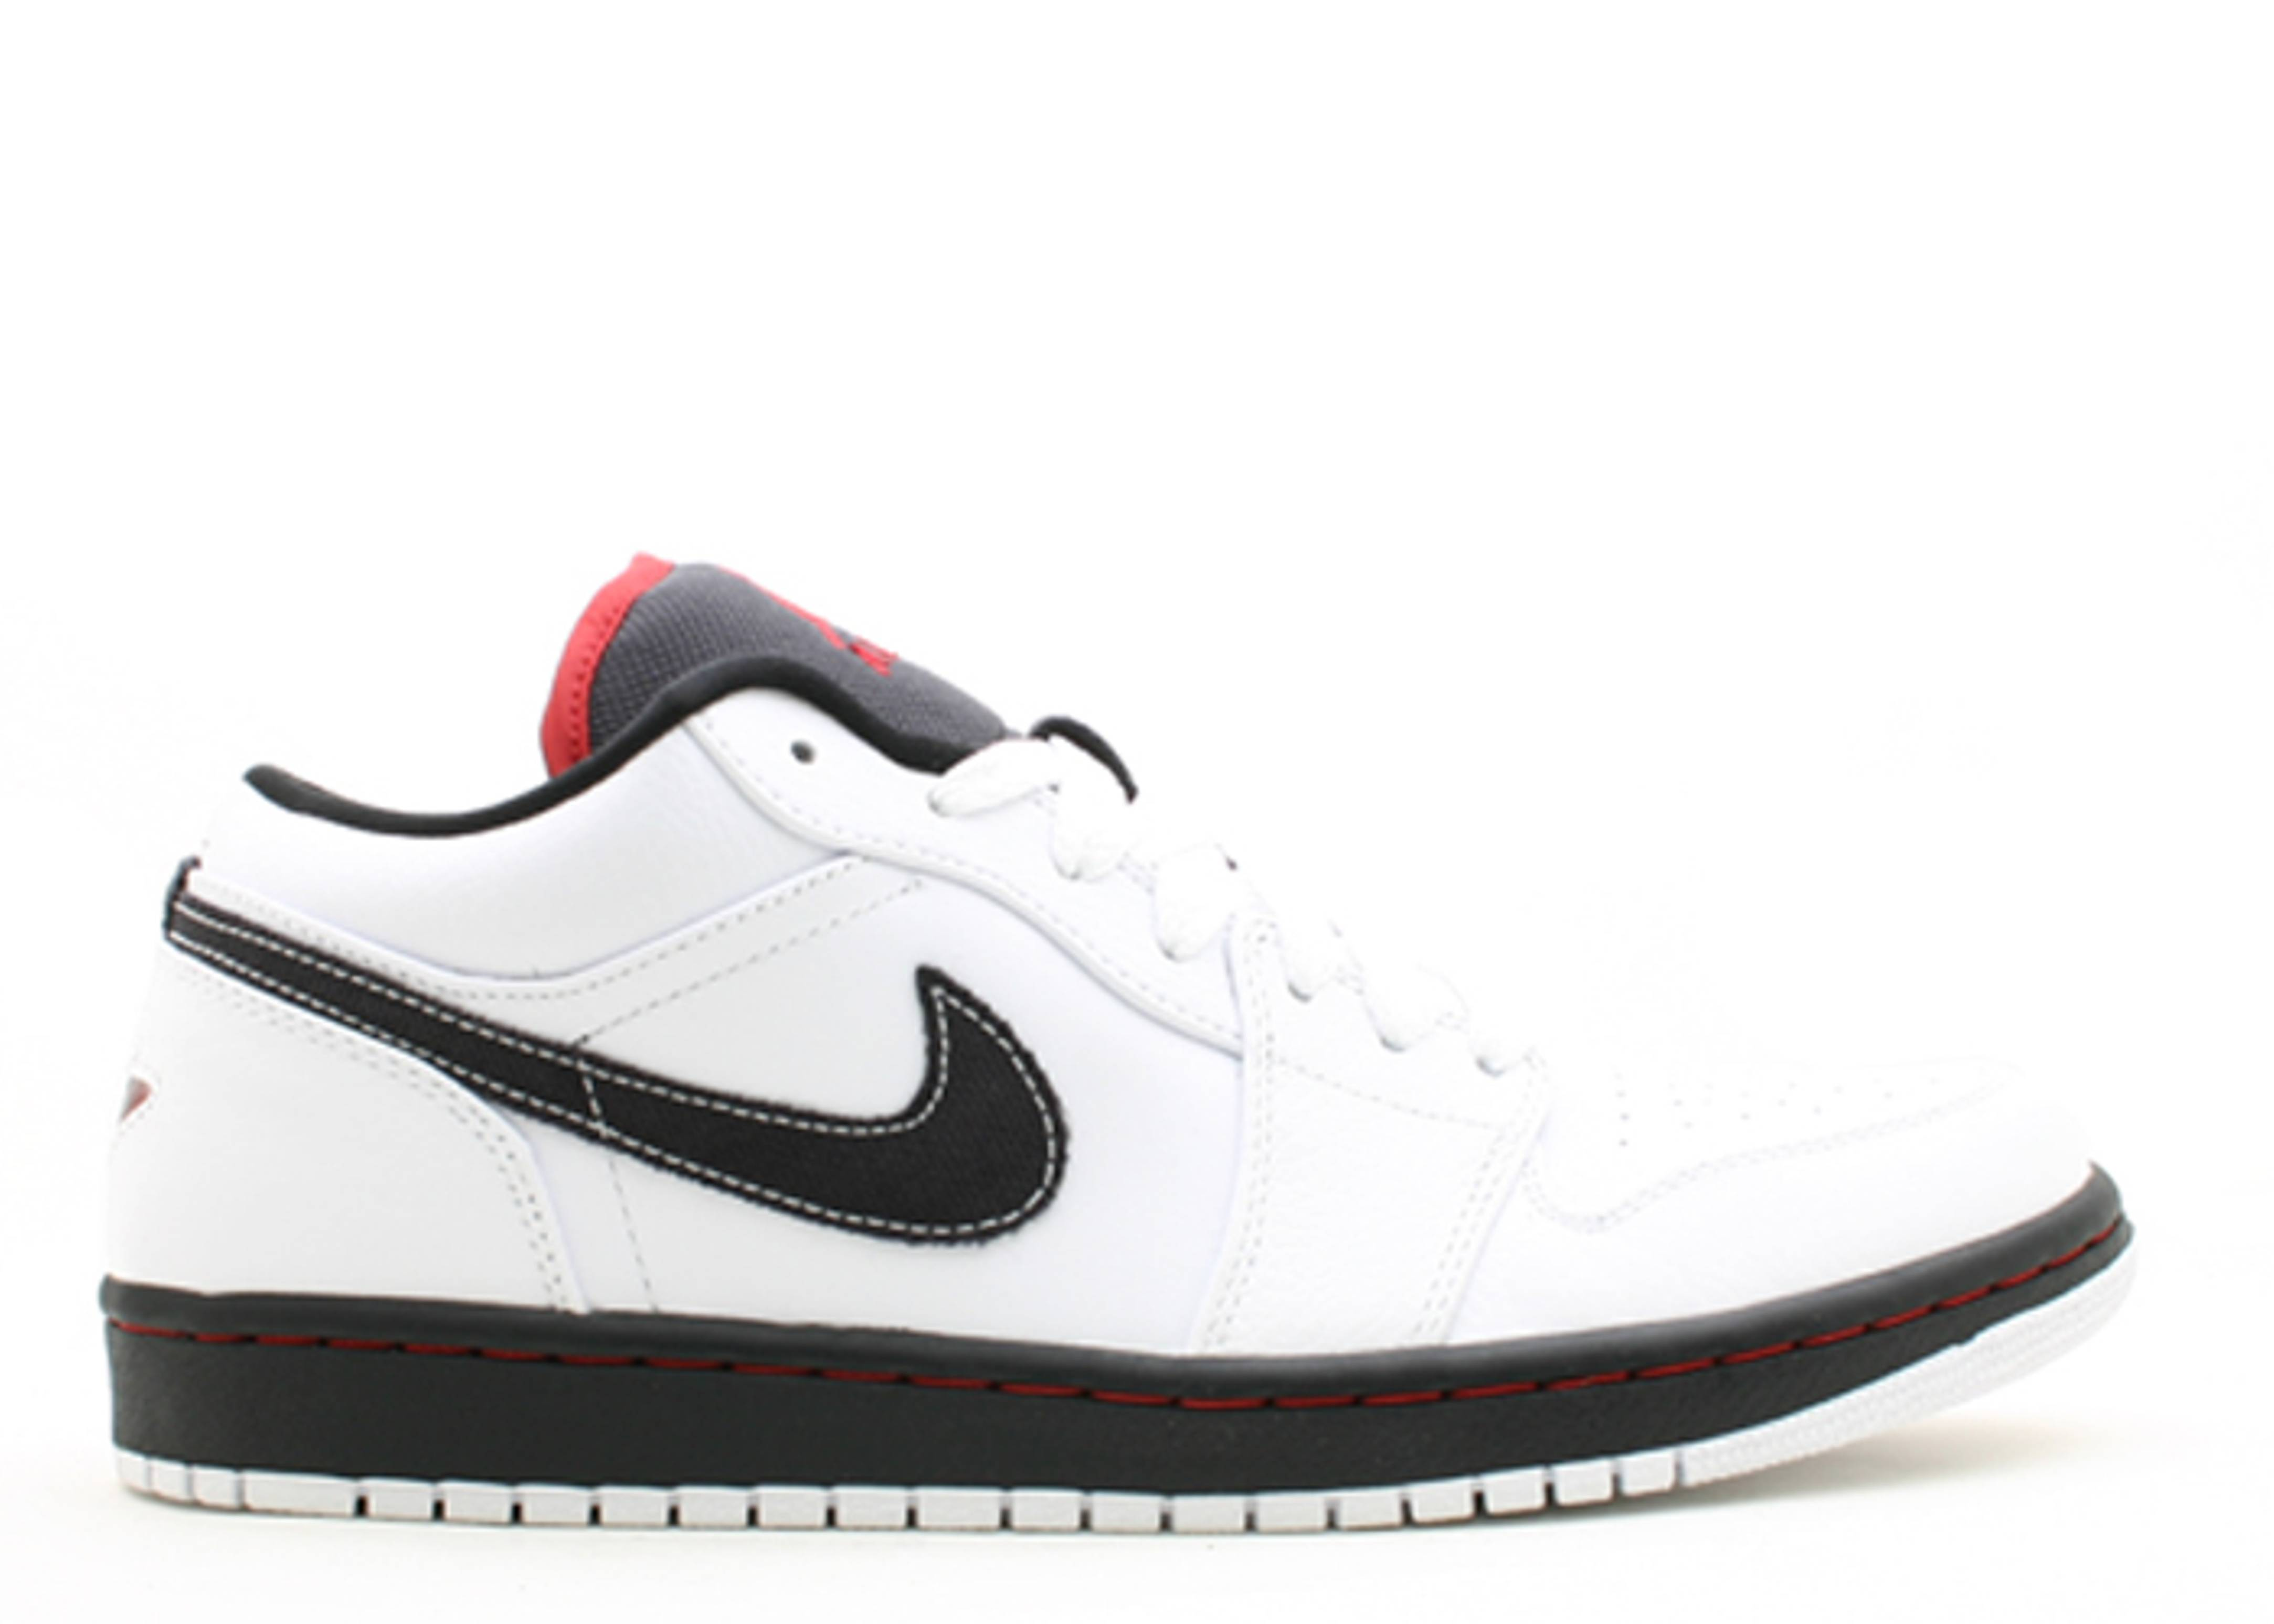 Air Jordan 1 Phat Low - Air Jordan - 338145 161 - white varsity red-black  cc589c6e6